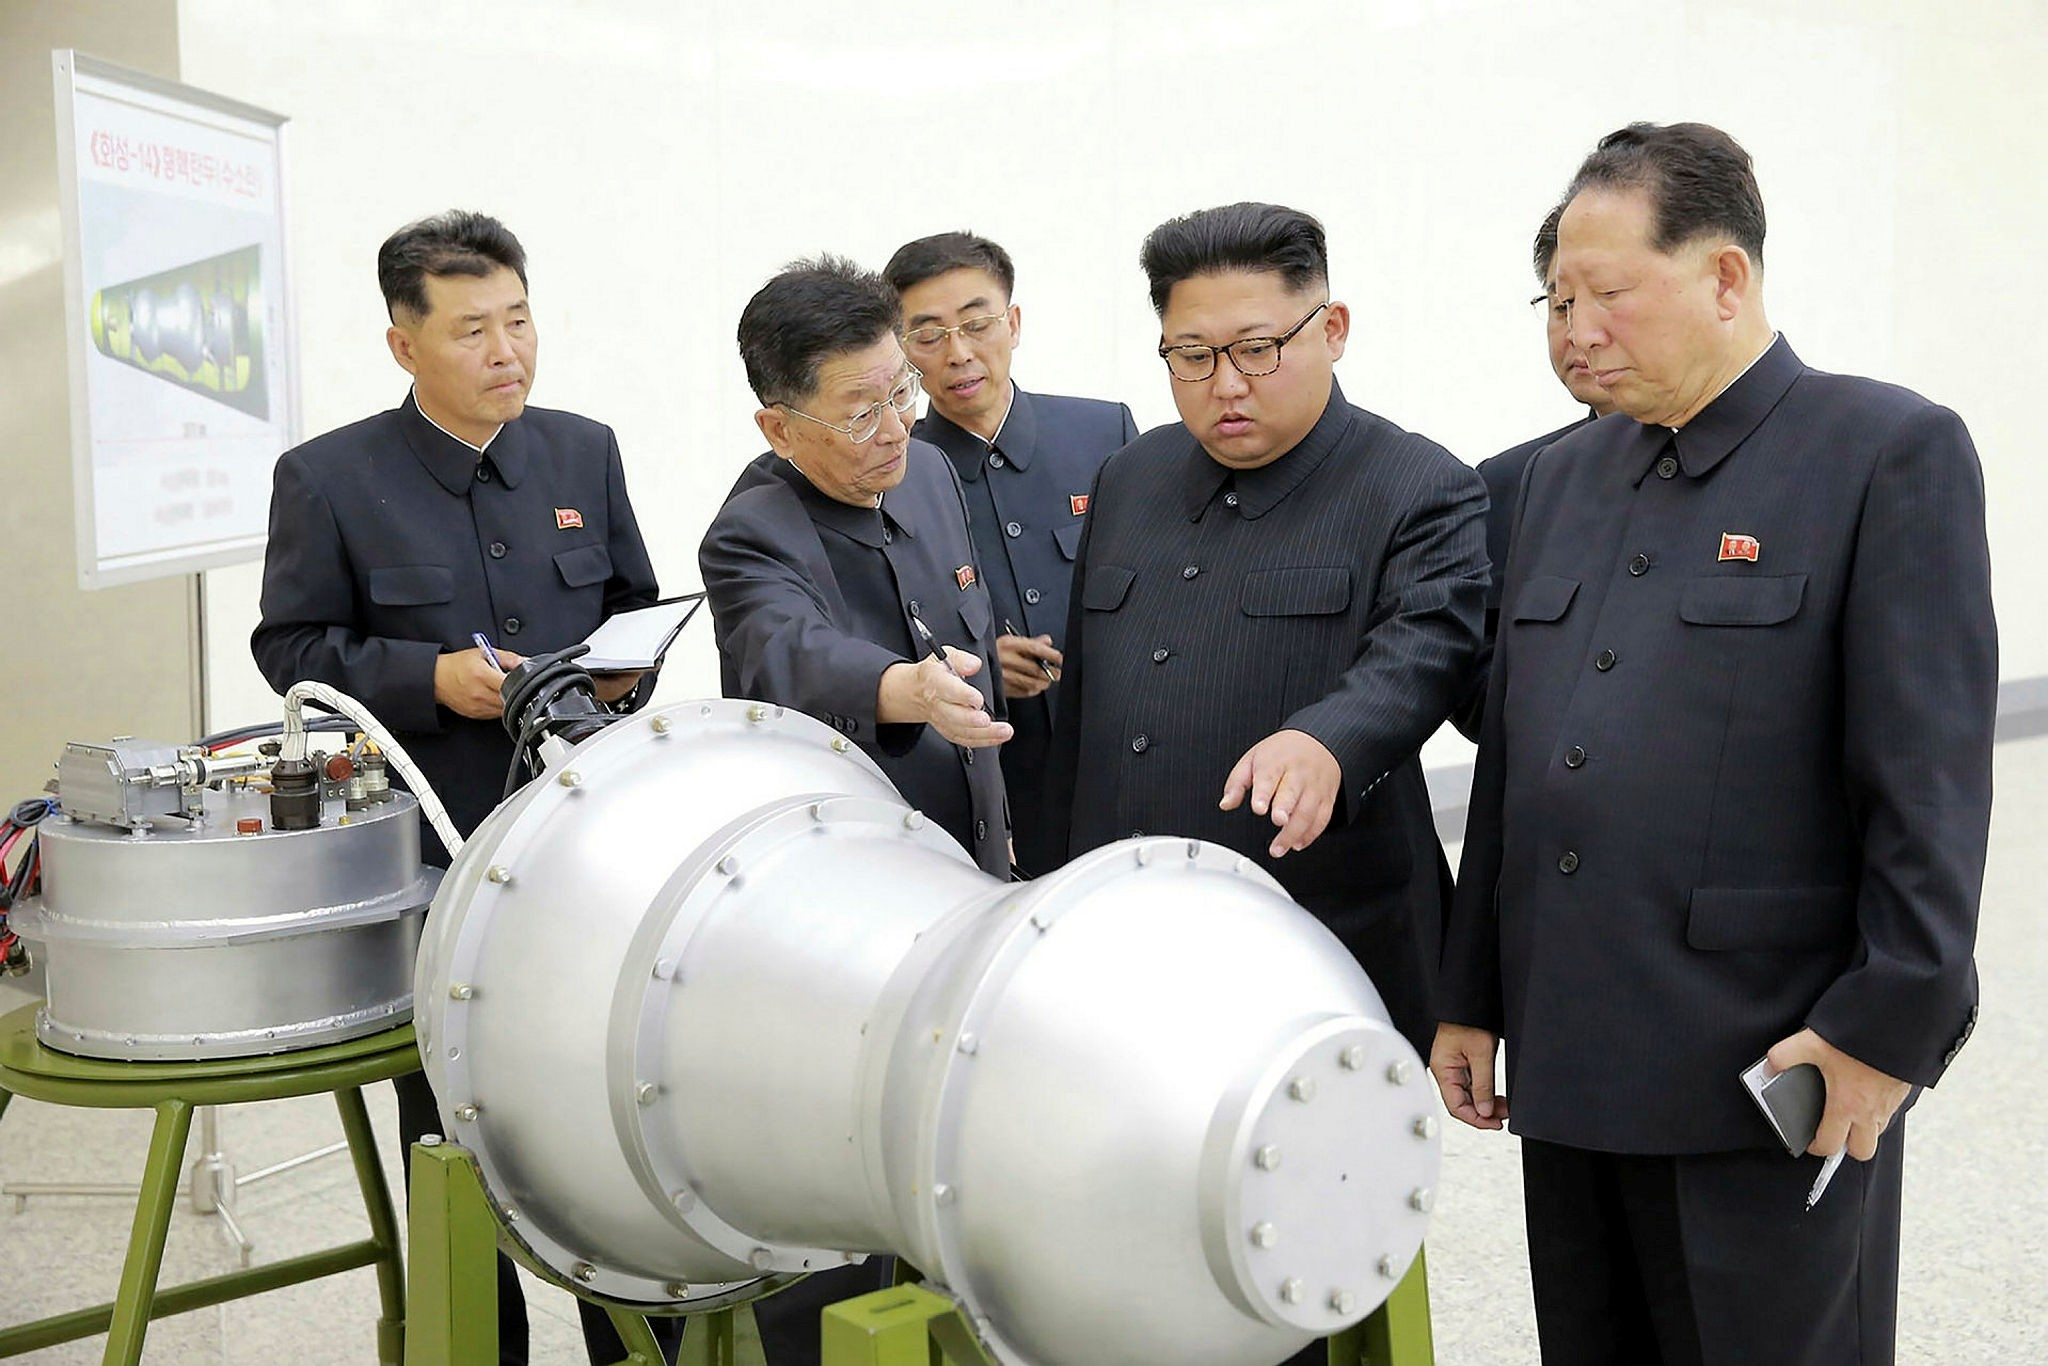 This undated picture released by North Korea's official Korean Central News Agency (KCNA) on September 3, shows North Korean leader Kim Jong-Un (C) looking at a machine resembling a rocket engine at an undisclosed location.